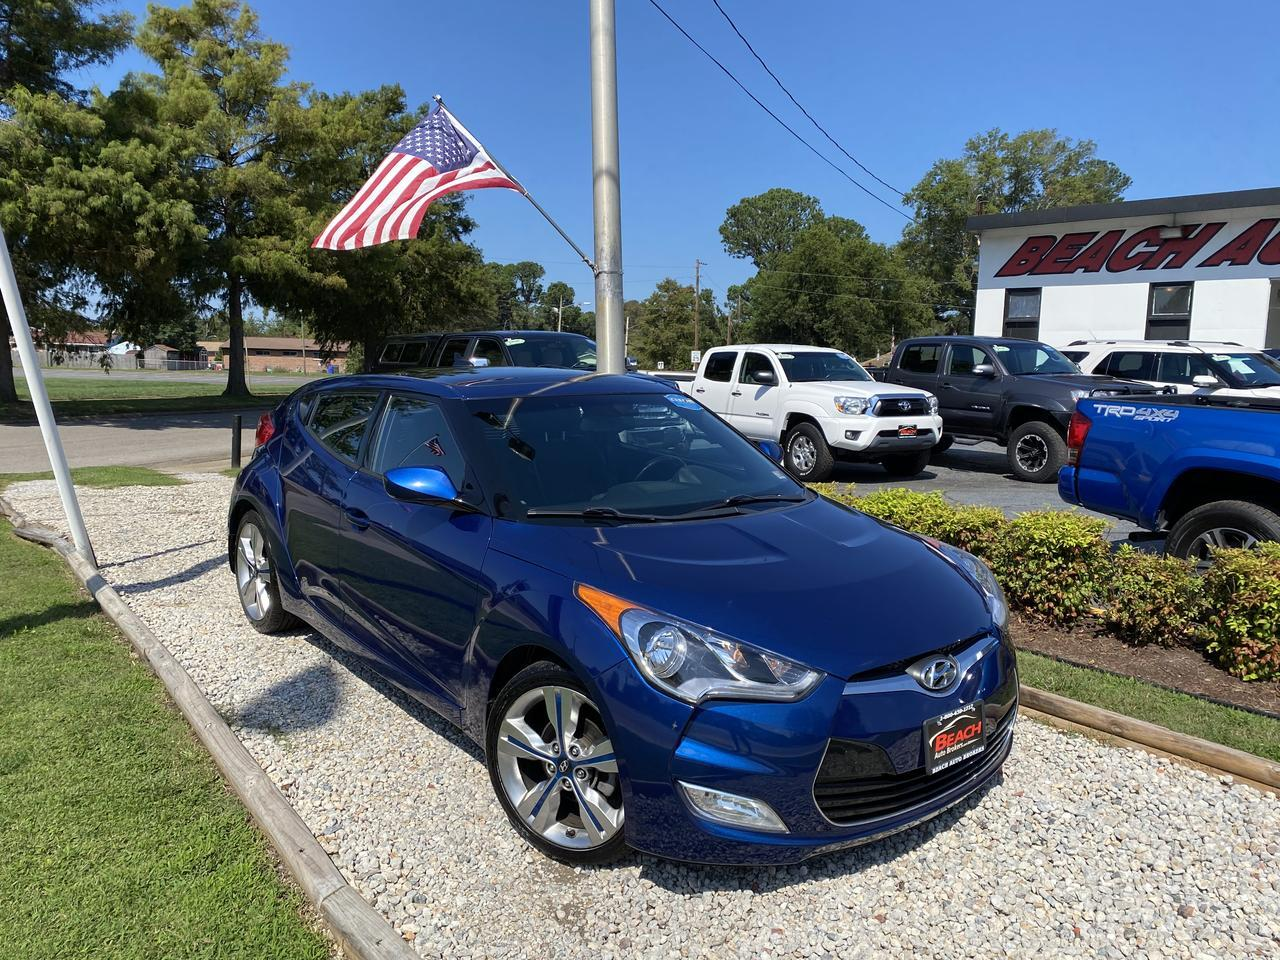 2016 HYUNDAI VELOSTER COUPE, WARRANTY, LEATHER, BACKUP CAM, PARKING SENSORS, PANORAMIC ROOF, BLUETOOTH, LOW MILES! Norfolk VA